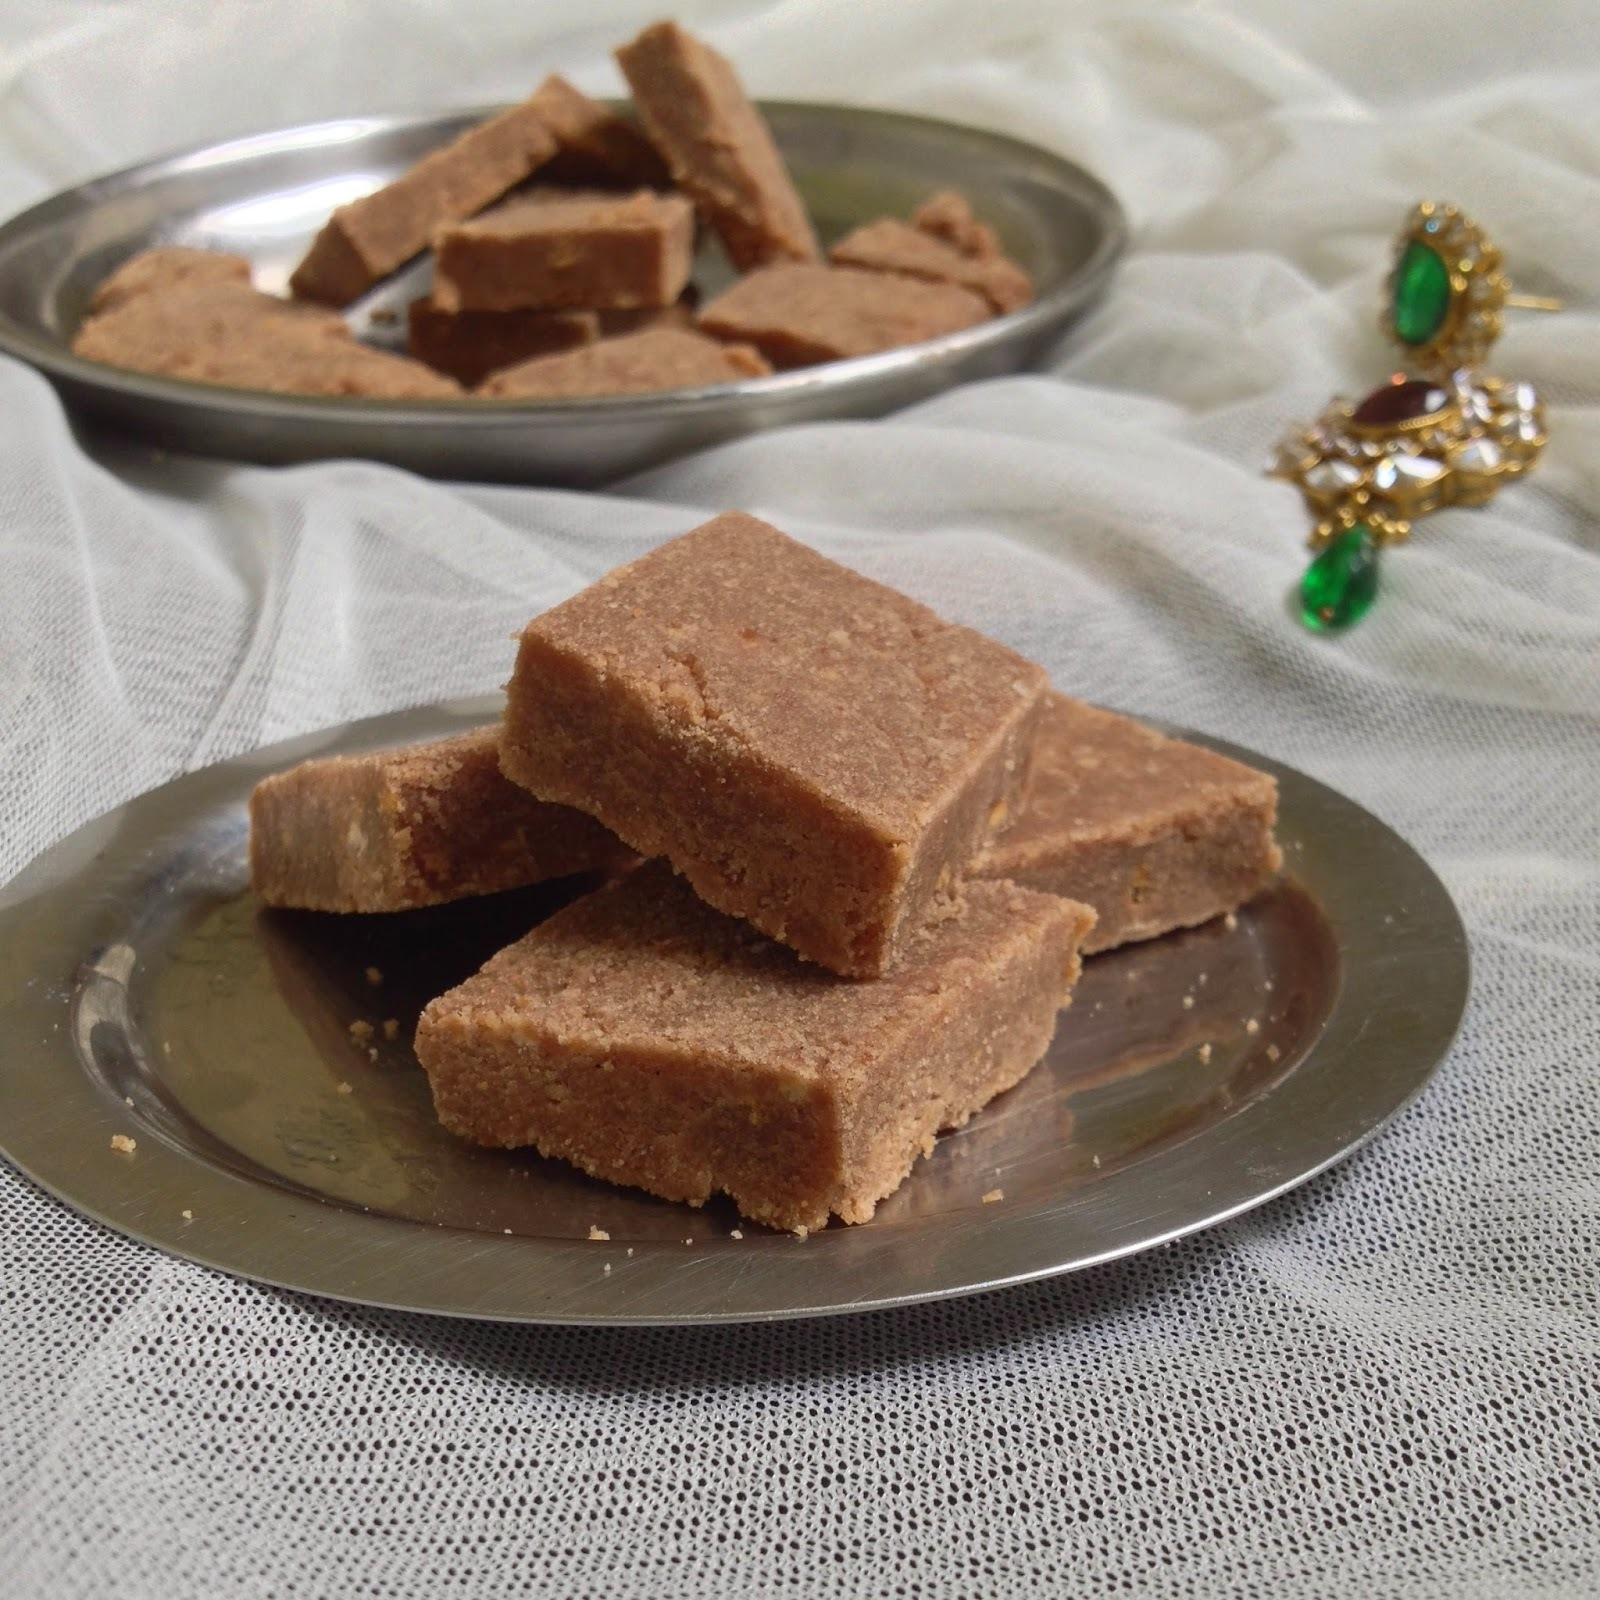 maida barfi-chocolate barfi -maida cake- how to make maida barfi